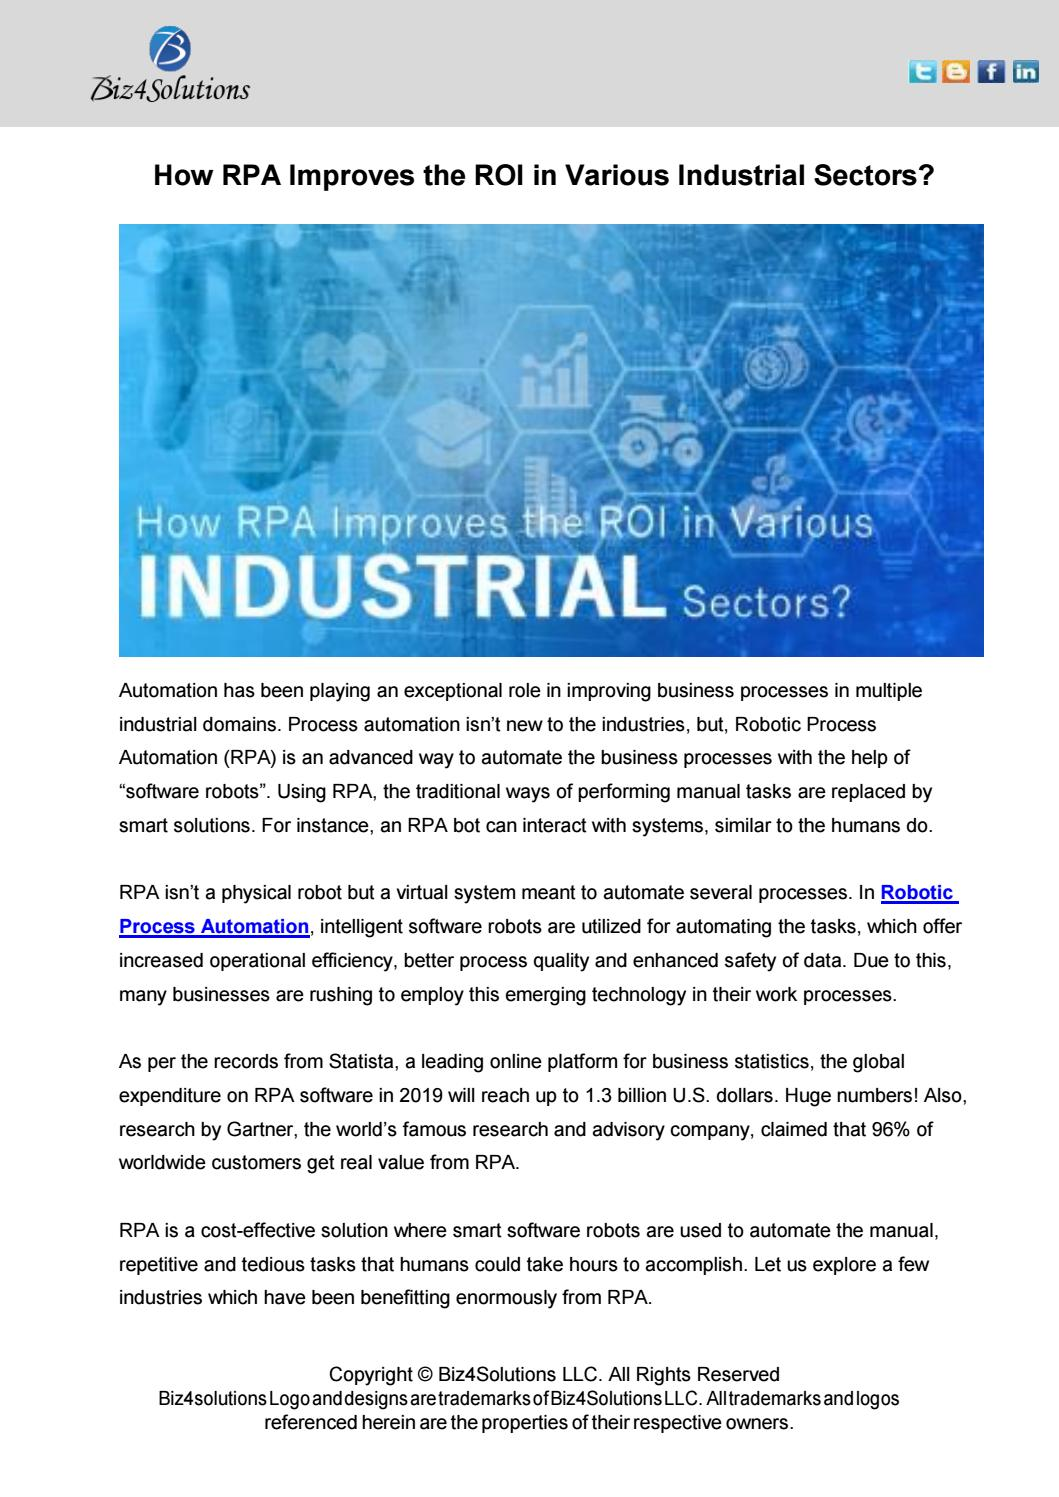 How RPA Improves the ROI in Various Industrial Sector by